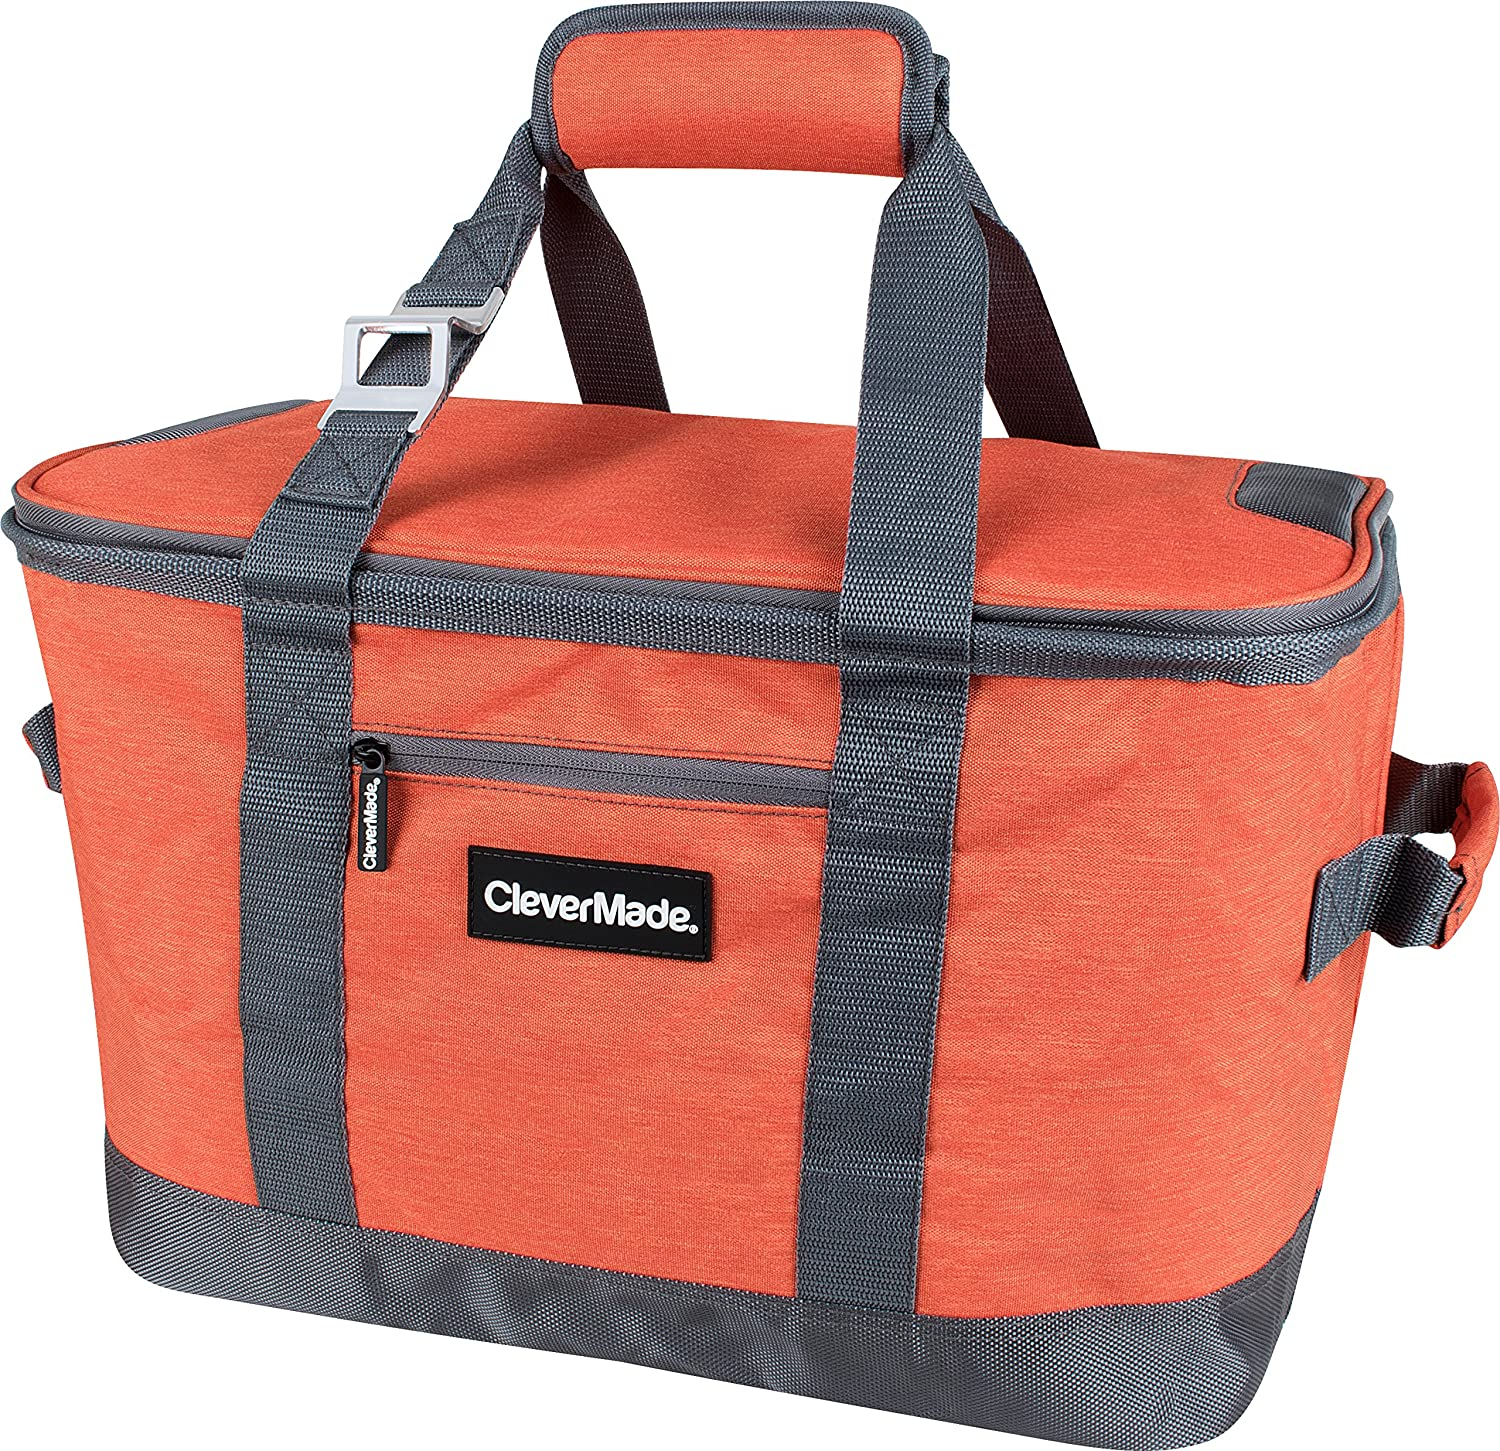 Heathered orange   Charcoal Pack of 1 CleverMade SnapBasket 50 Can, Soft-Sided Collapsible Cooler  30 Liter Insulated Tote Bag, Heathered Charcoal Black